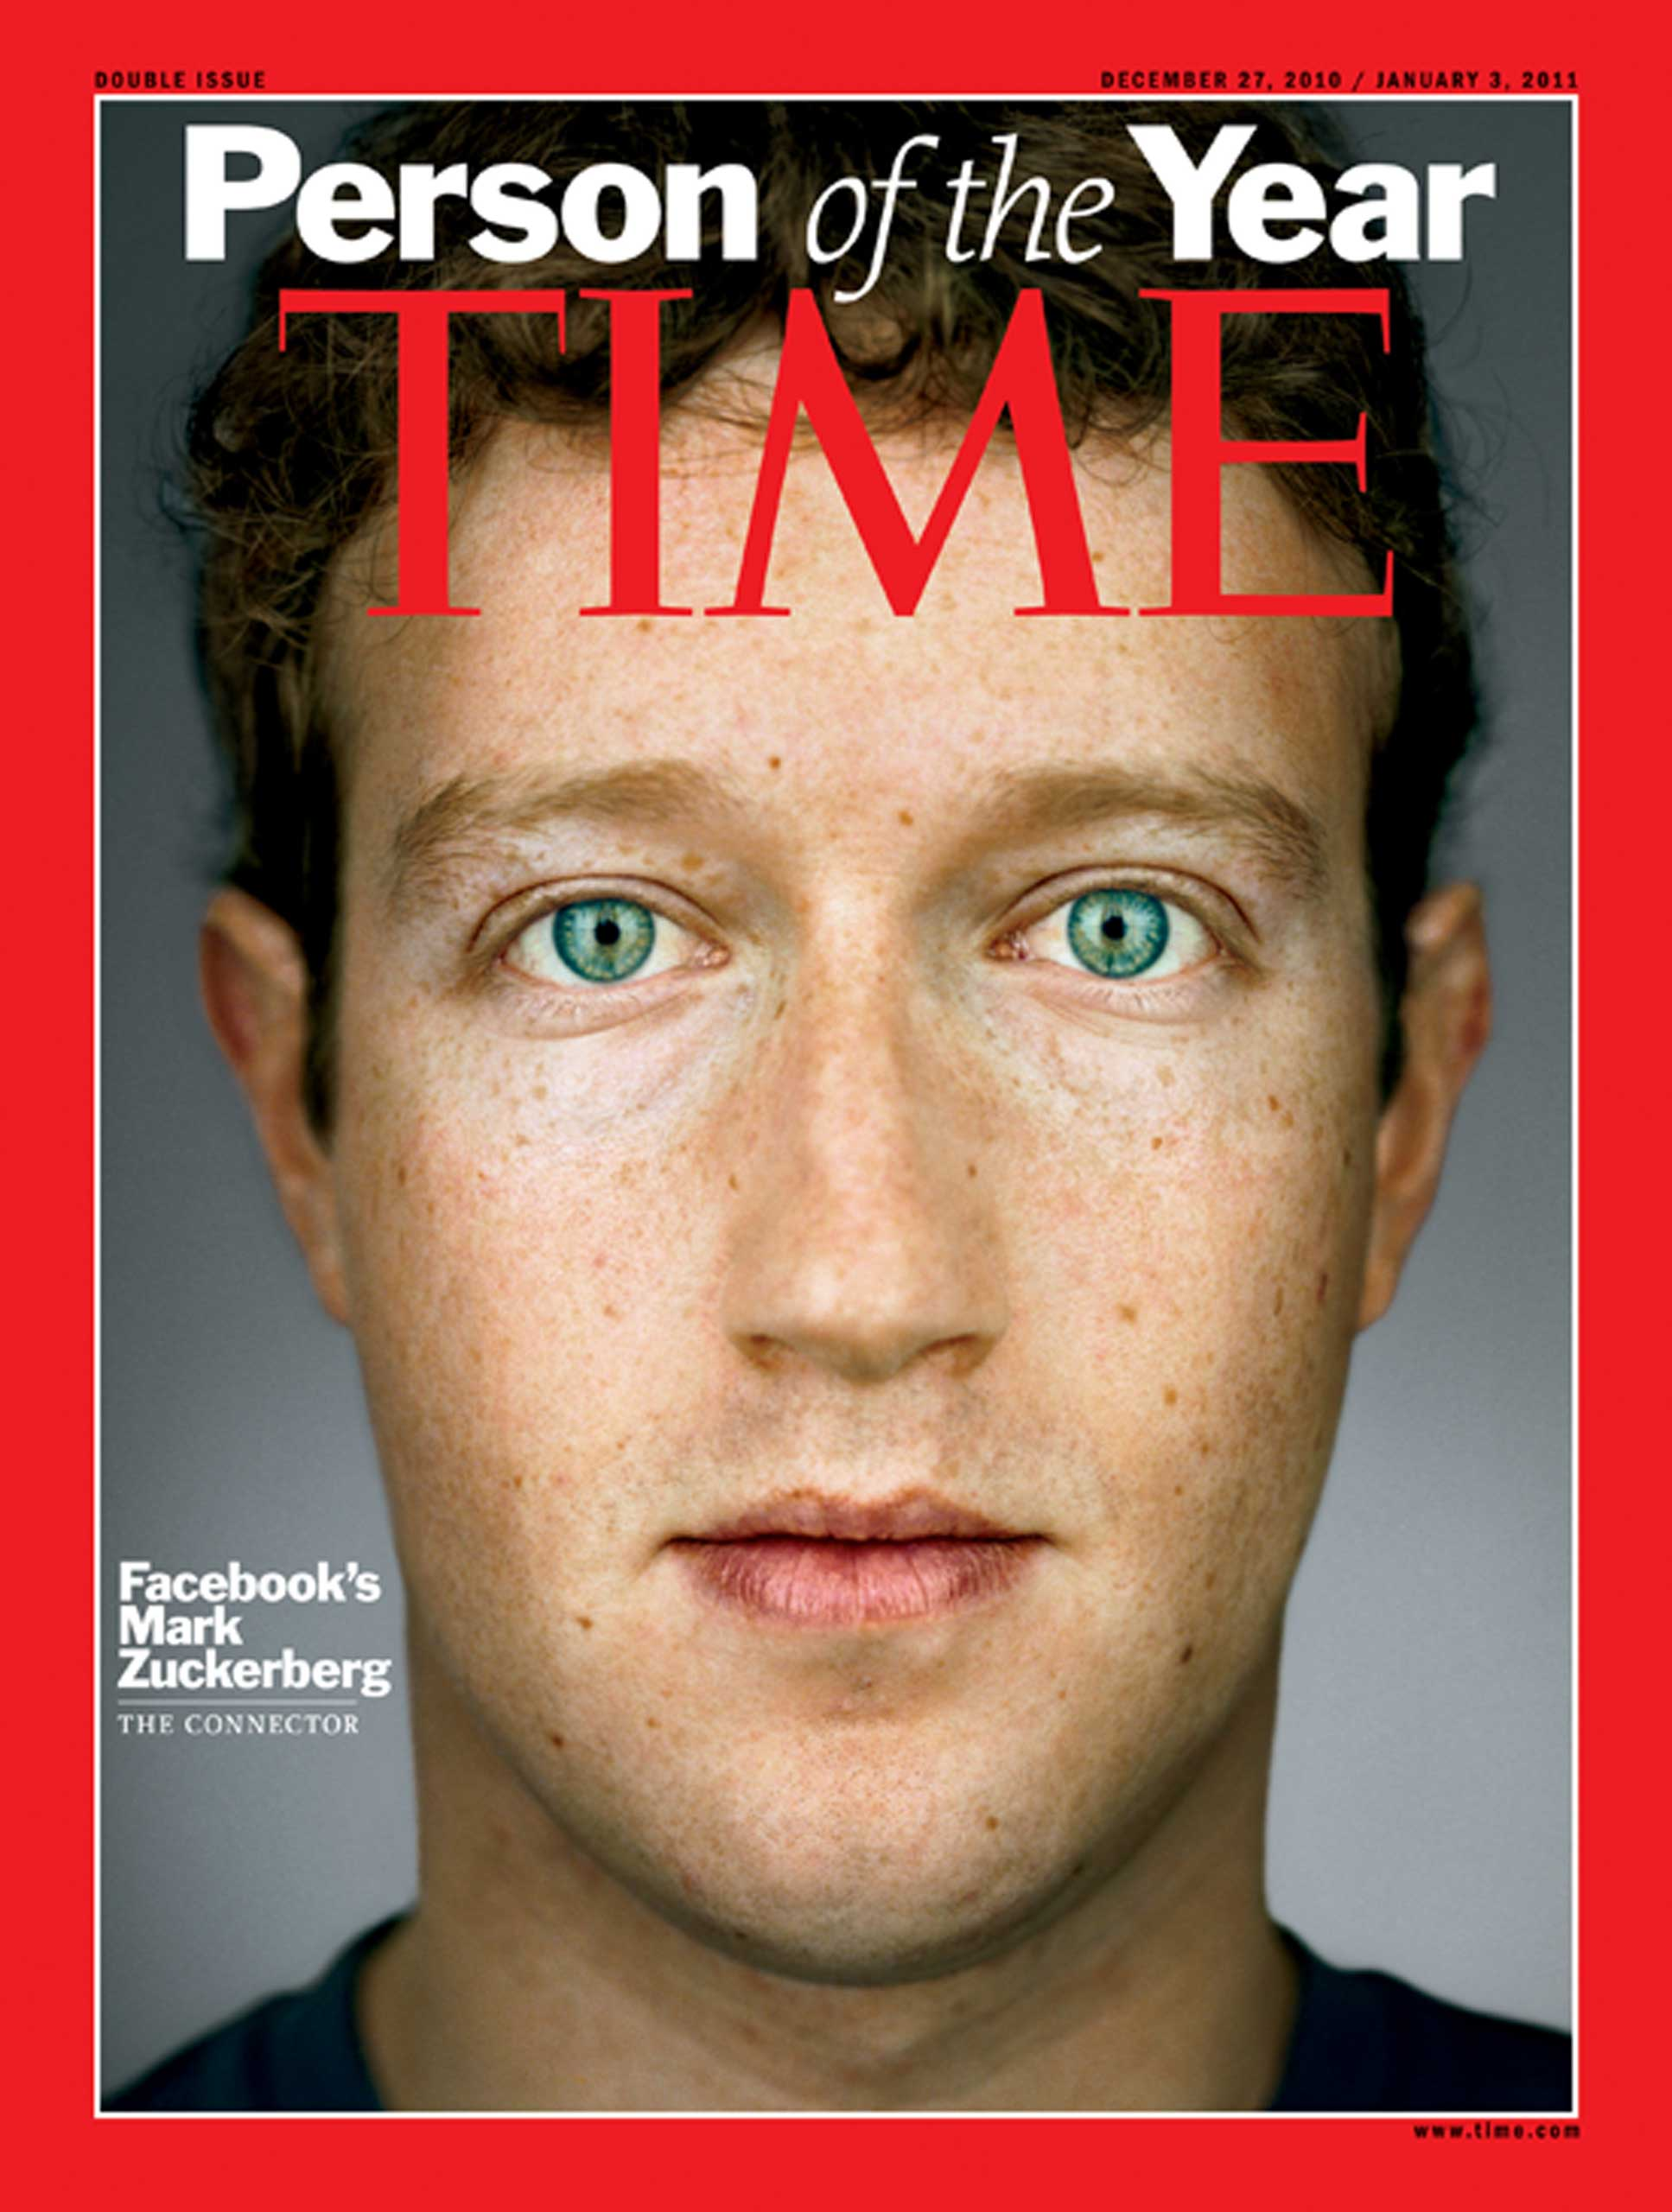 2010: Mark Zuckerberg